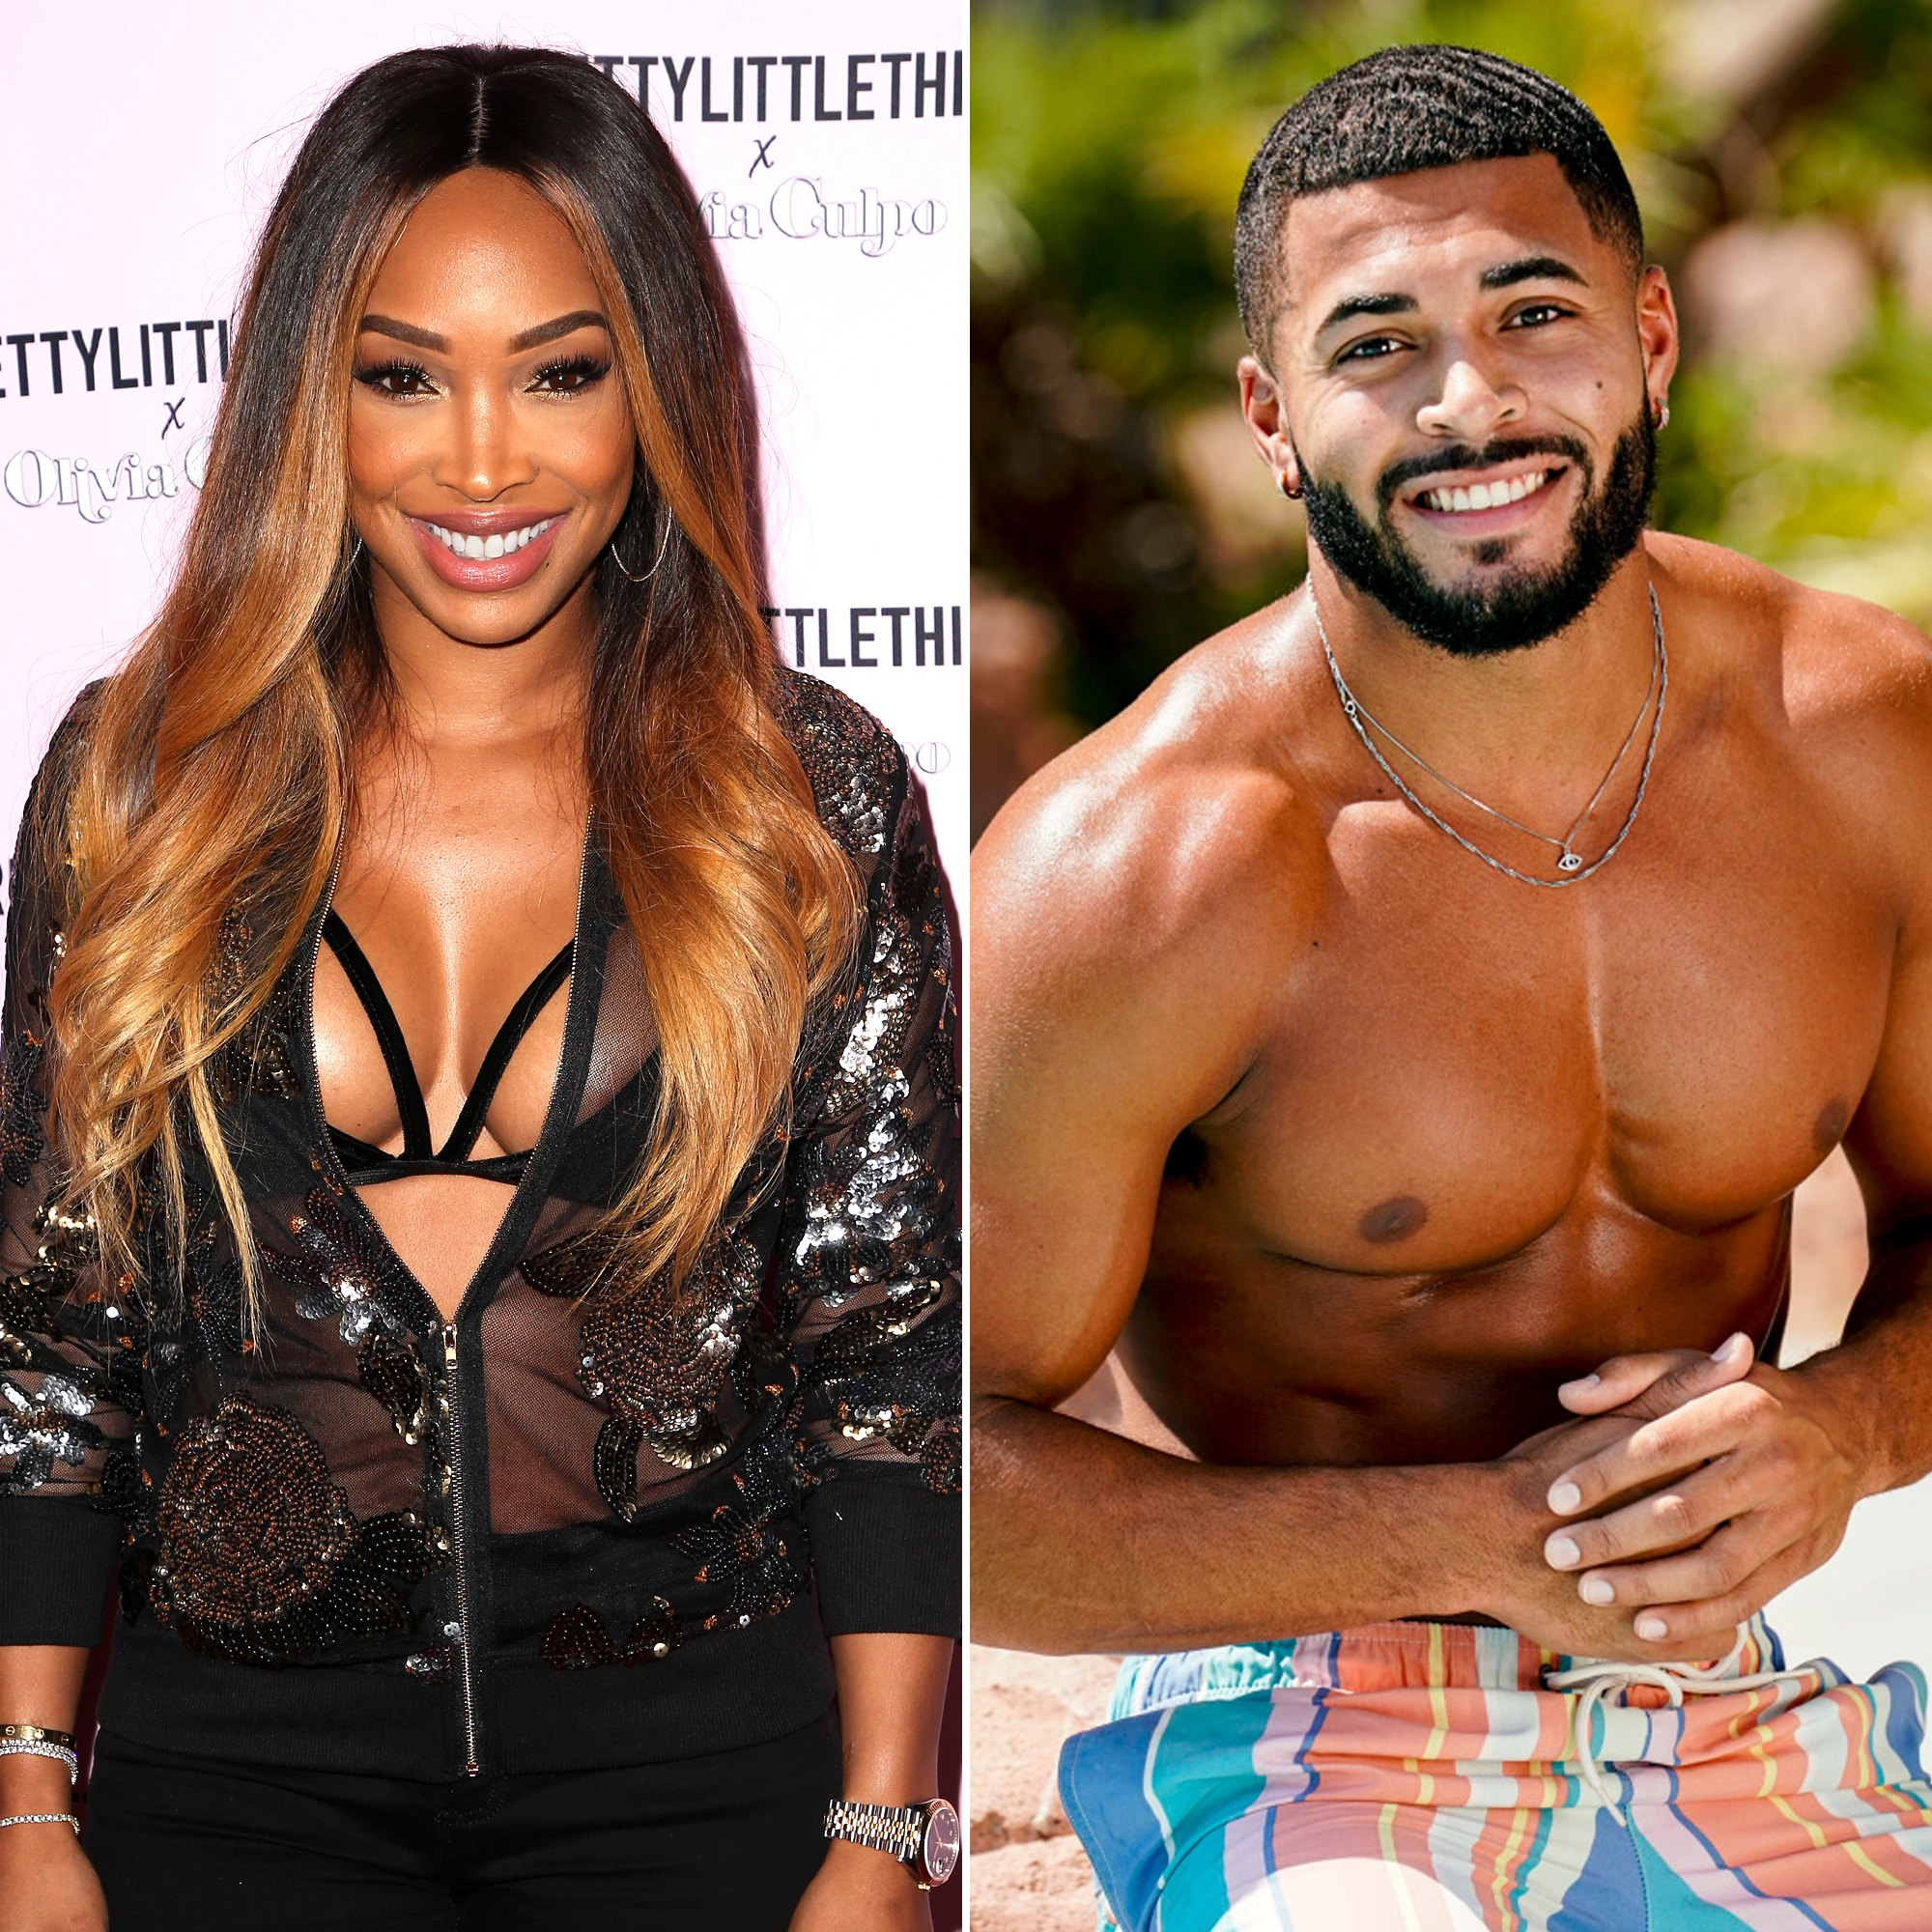 malika-haqq-and-love-island-contestant-johnny-middlebrooks-spotted-kissing-and-holding-hands-during-night-out